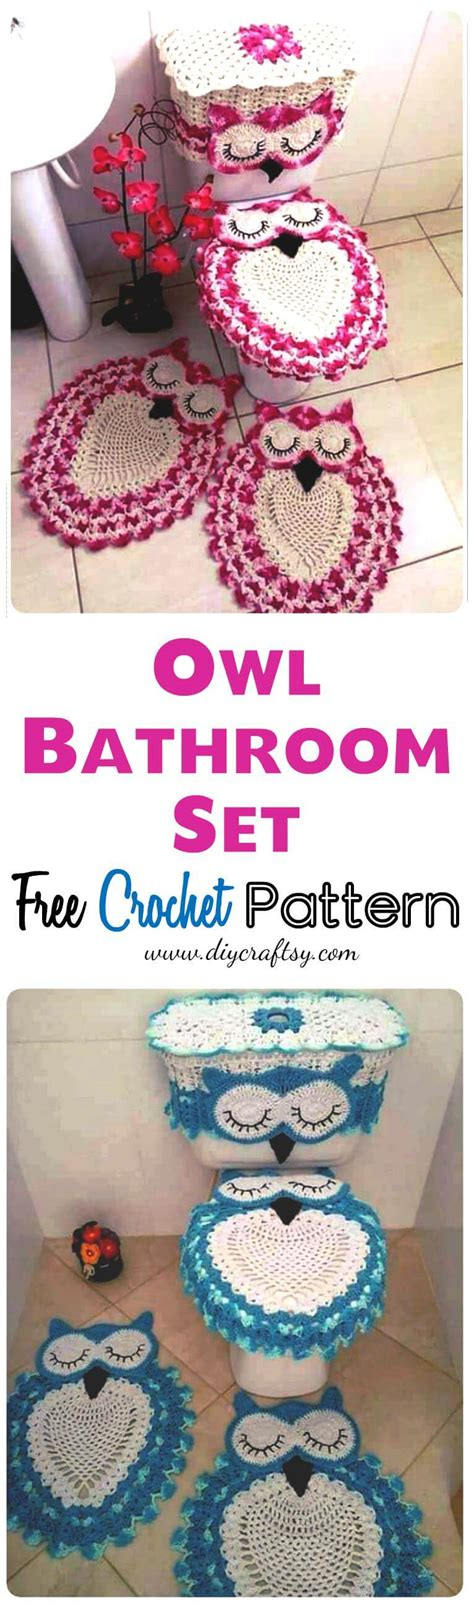 bathroom pattern owl bathroom set free crochet pattern diy crafts